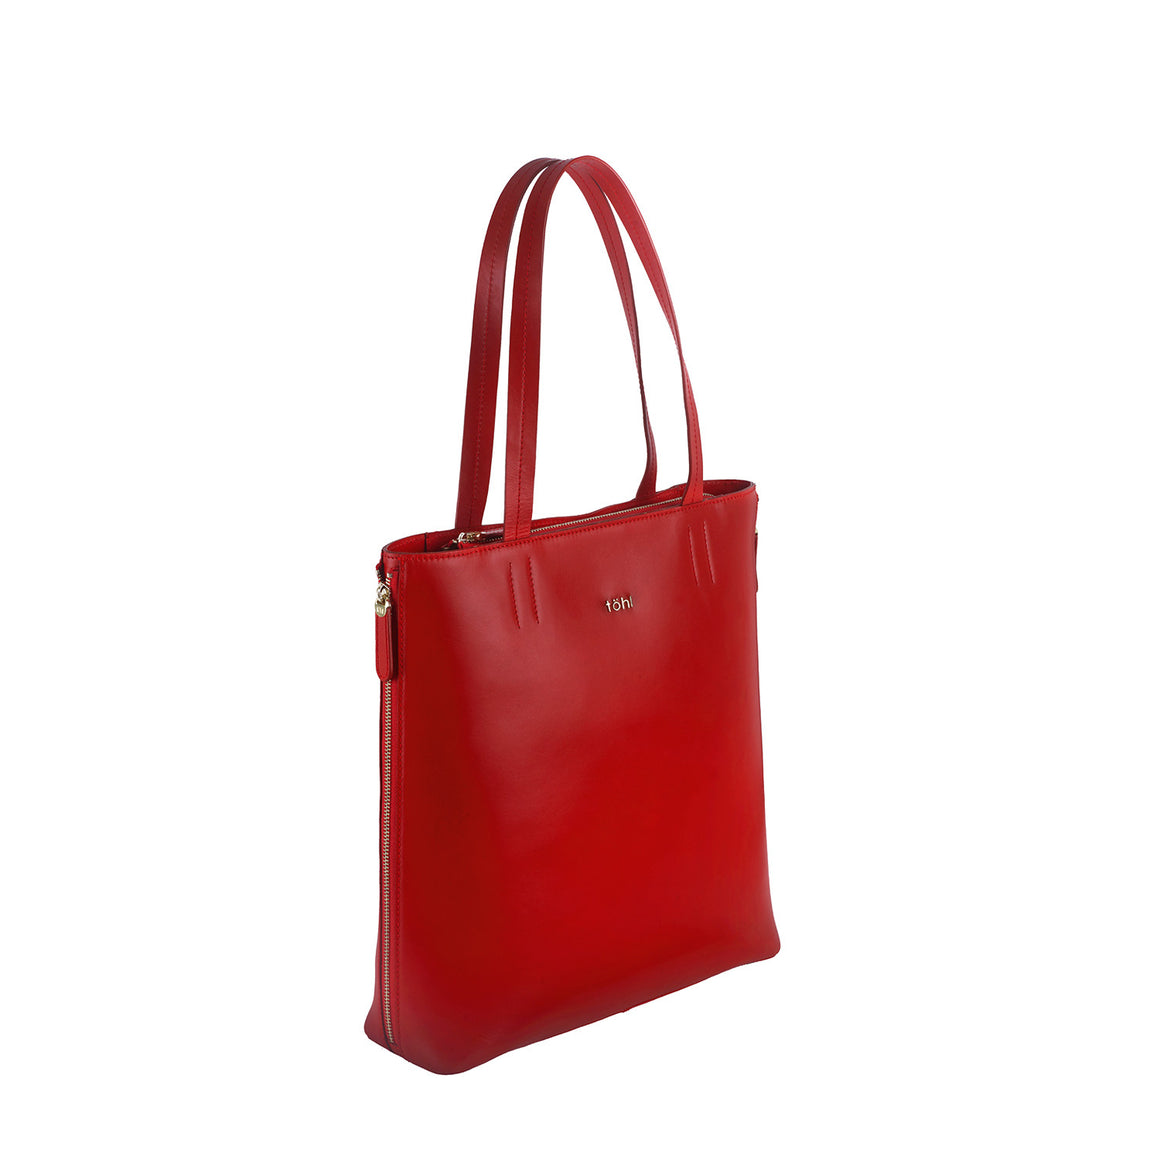 SB 0005 - TOHL CARLISLE WOMEN'S DAY SHOPPER - SPICE RED